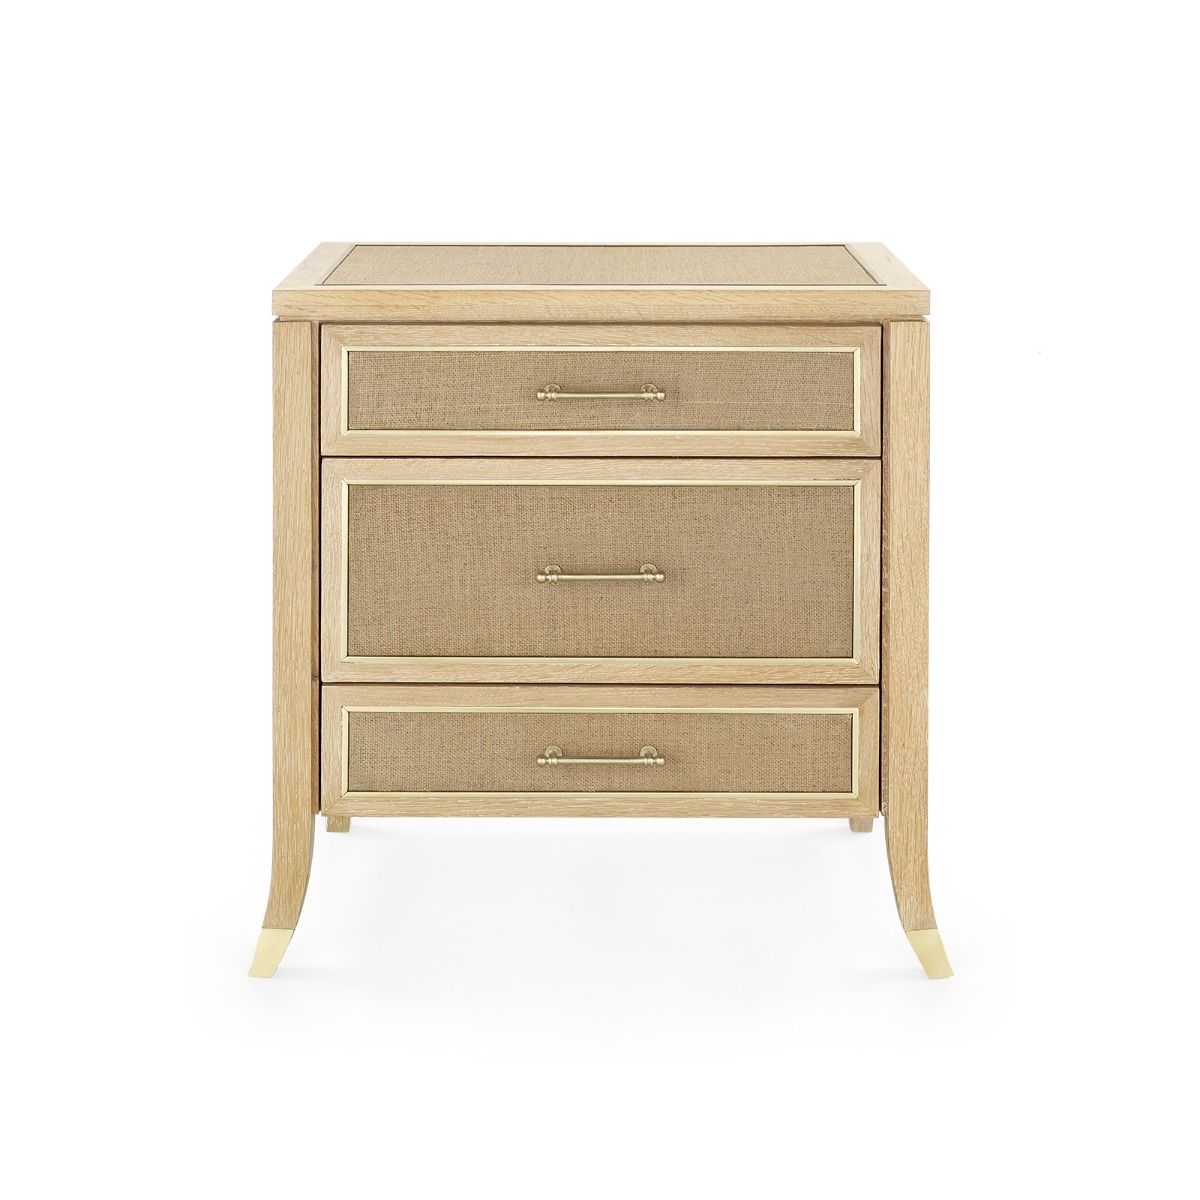 Bungalow 5 - PAULINA 3-DRAWER SIDE TABLE, NATURAL